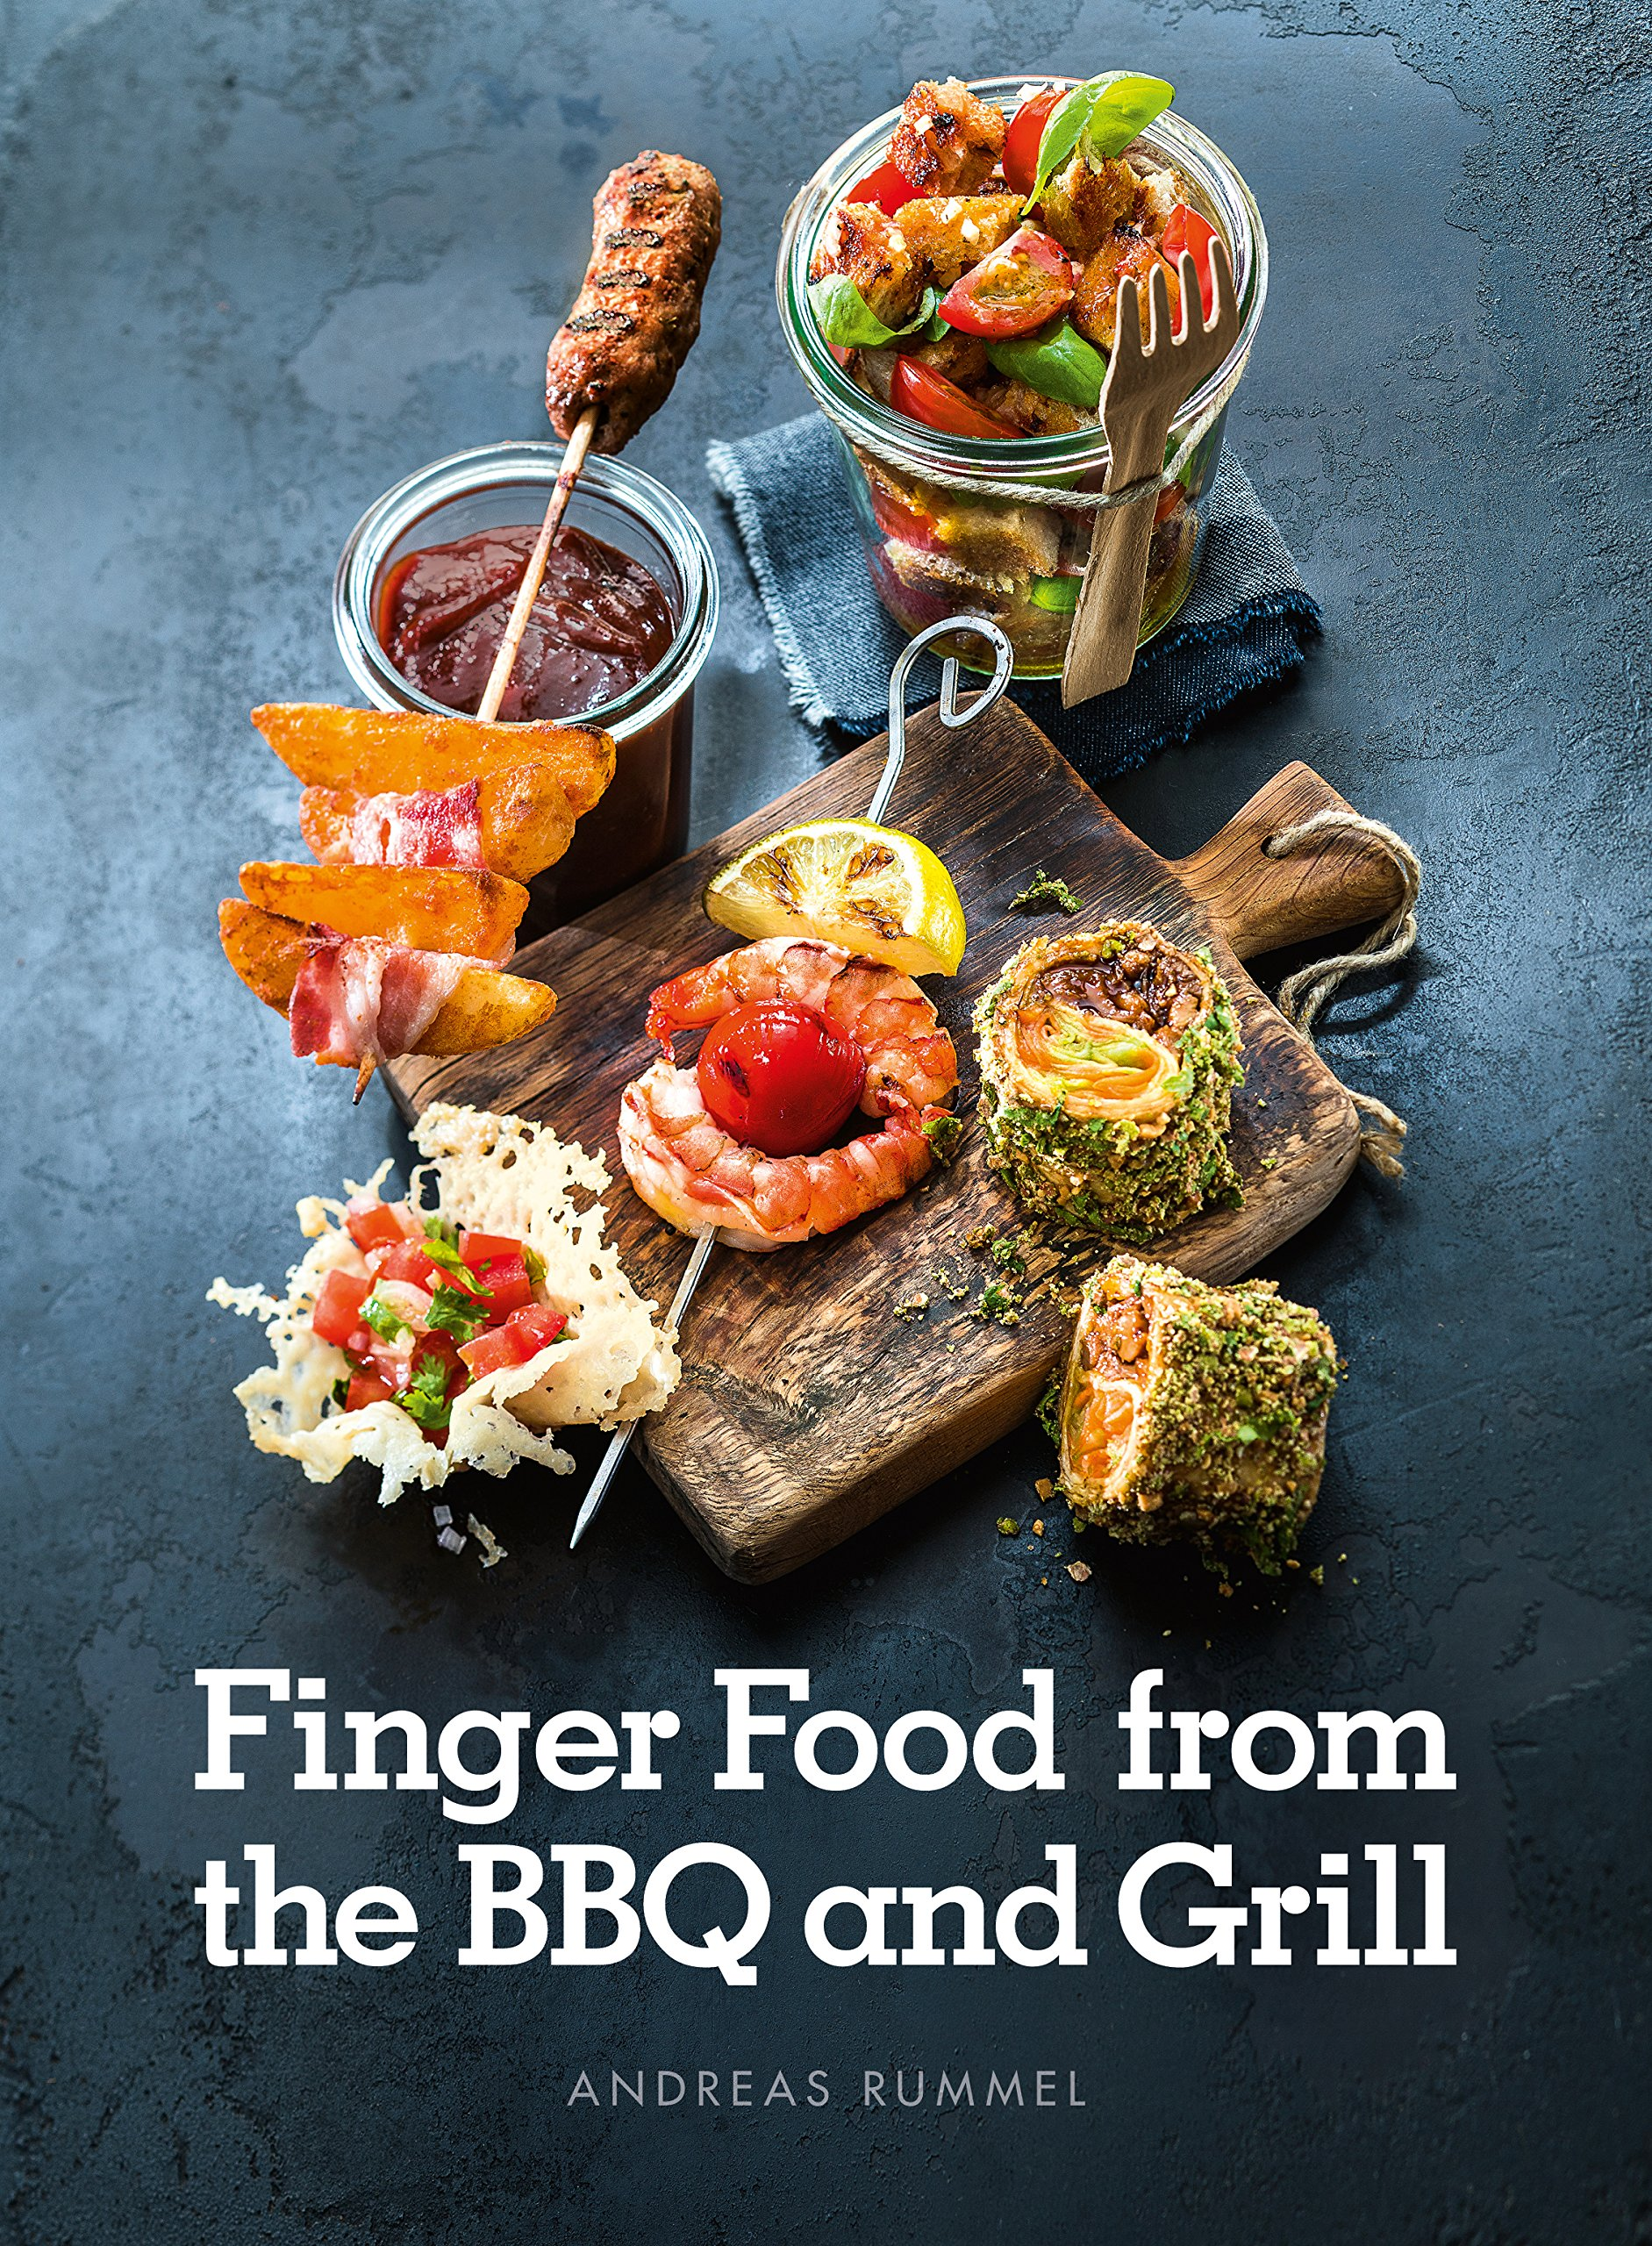 finger food from the bbq and grill livros na amazon brasil